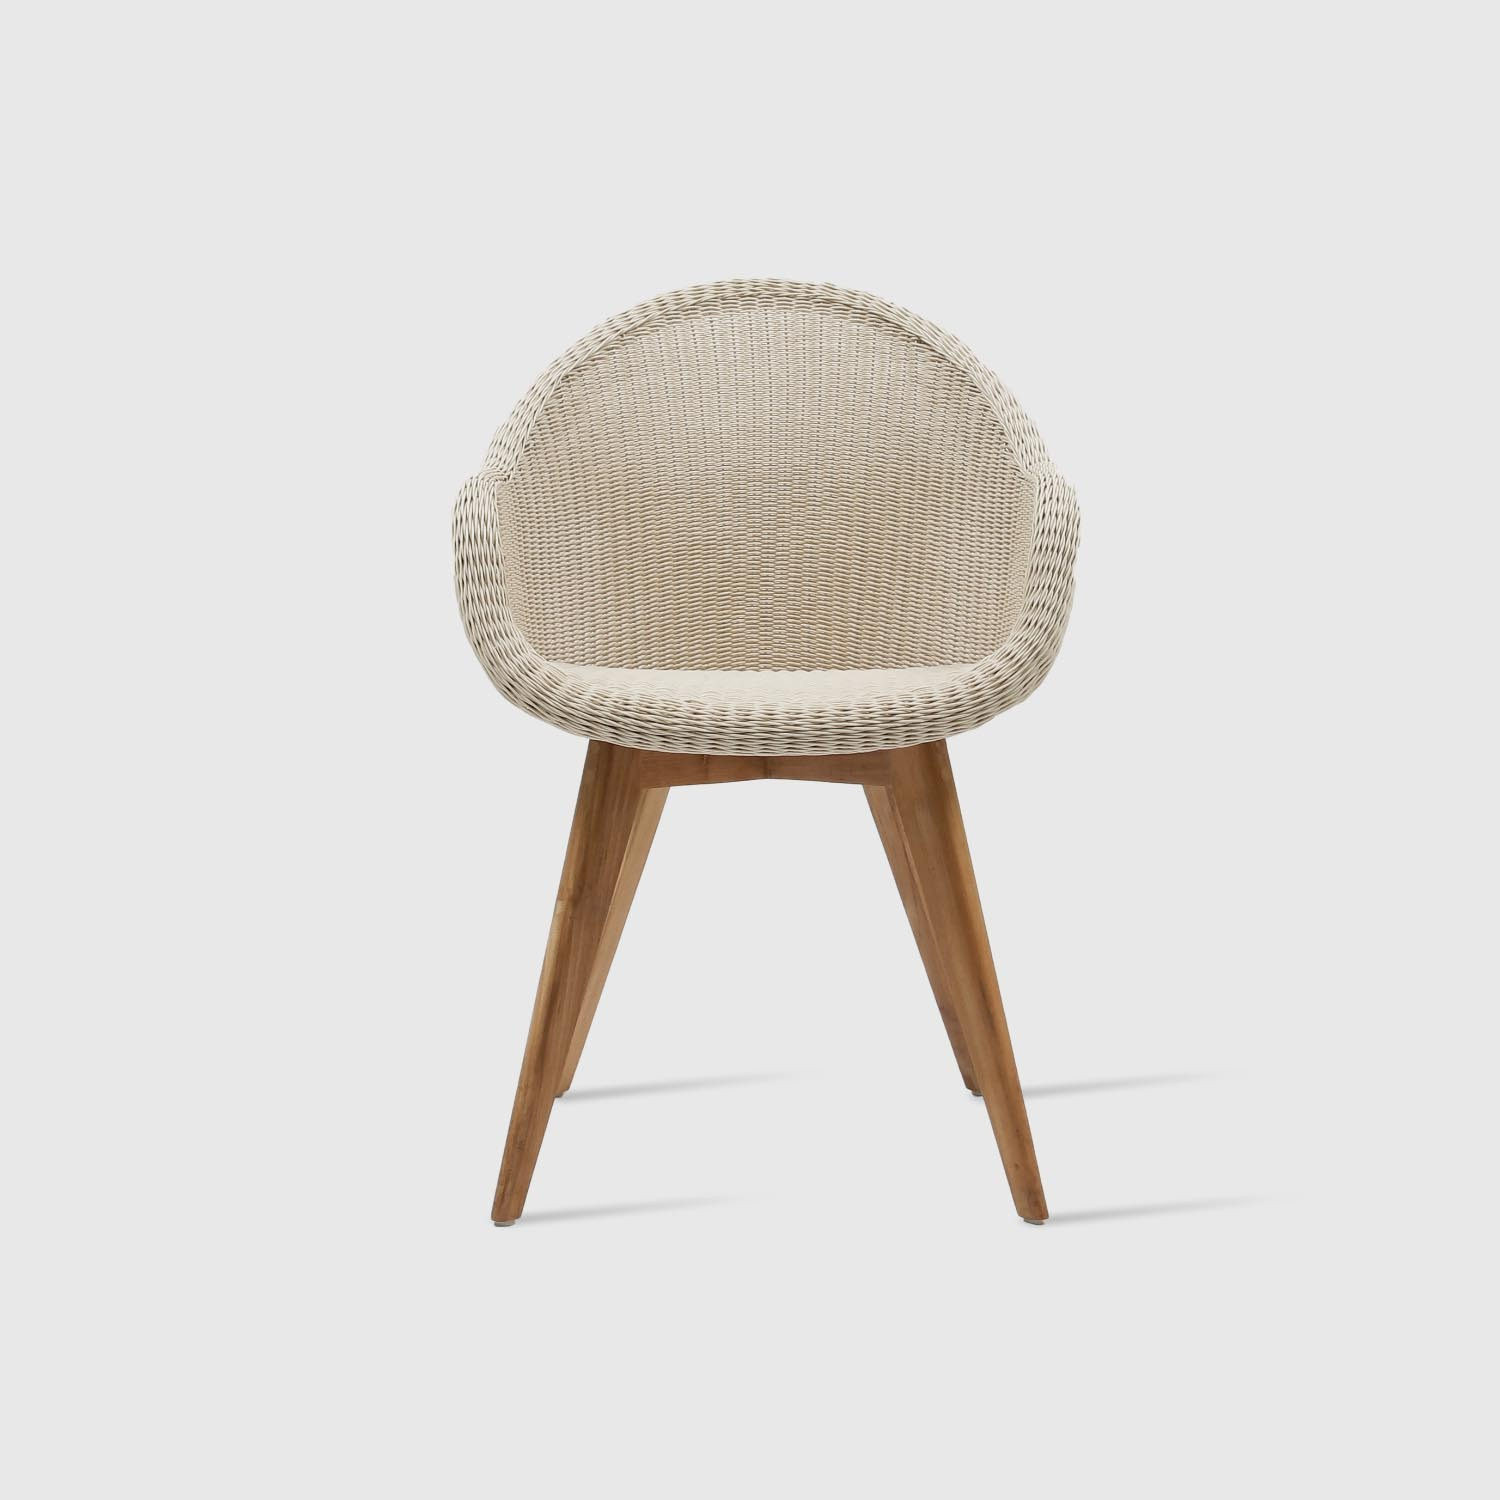 Dining Chair Edgar, Teak Base, Old Lace